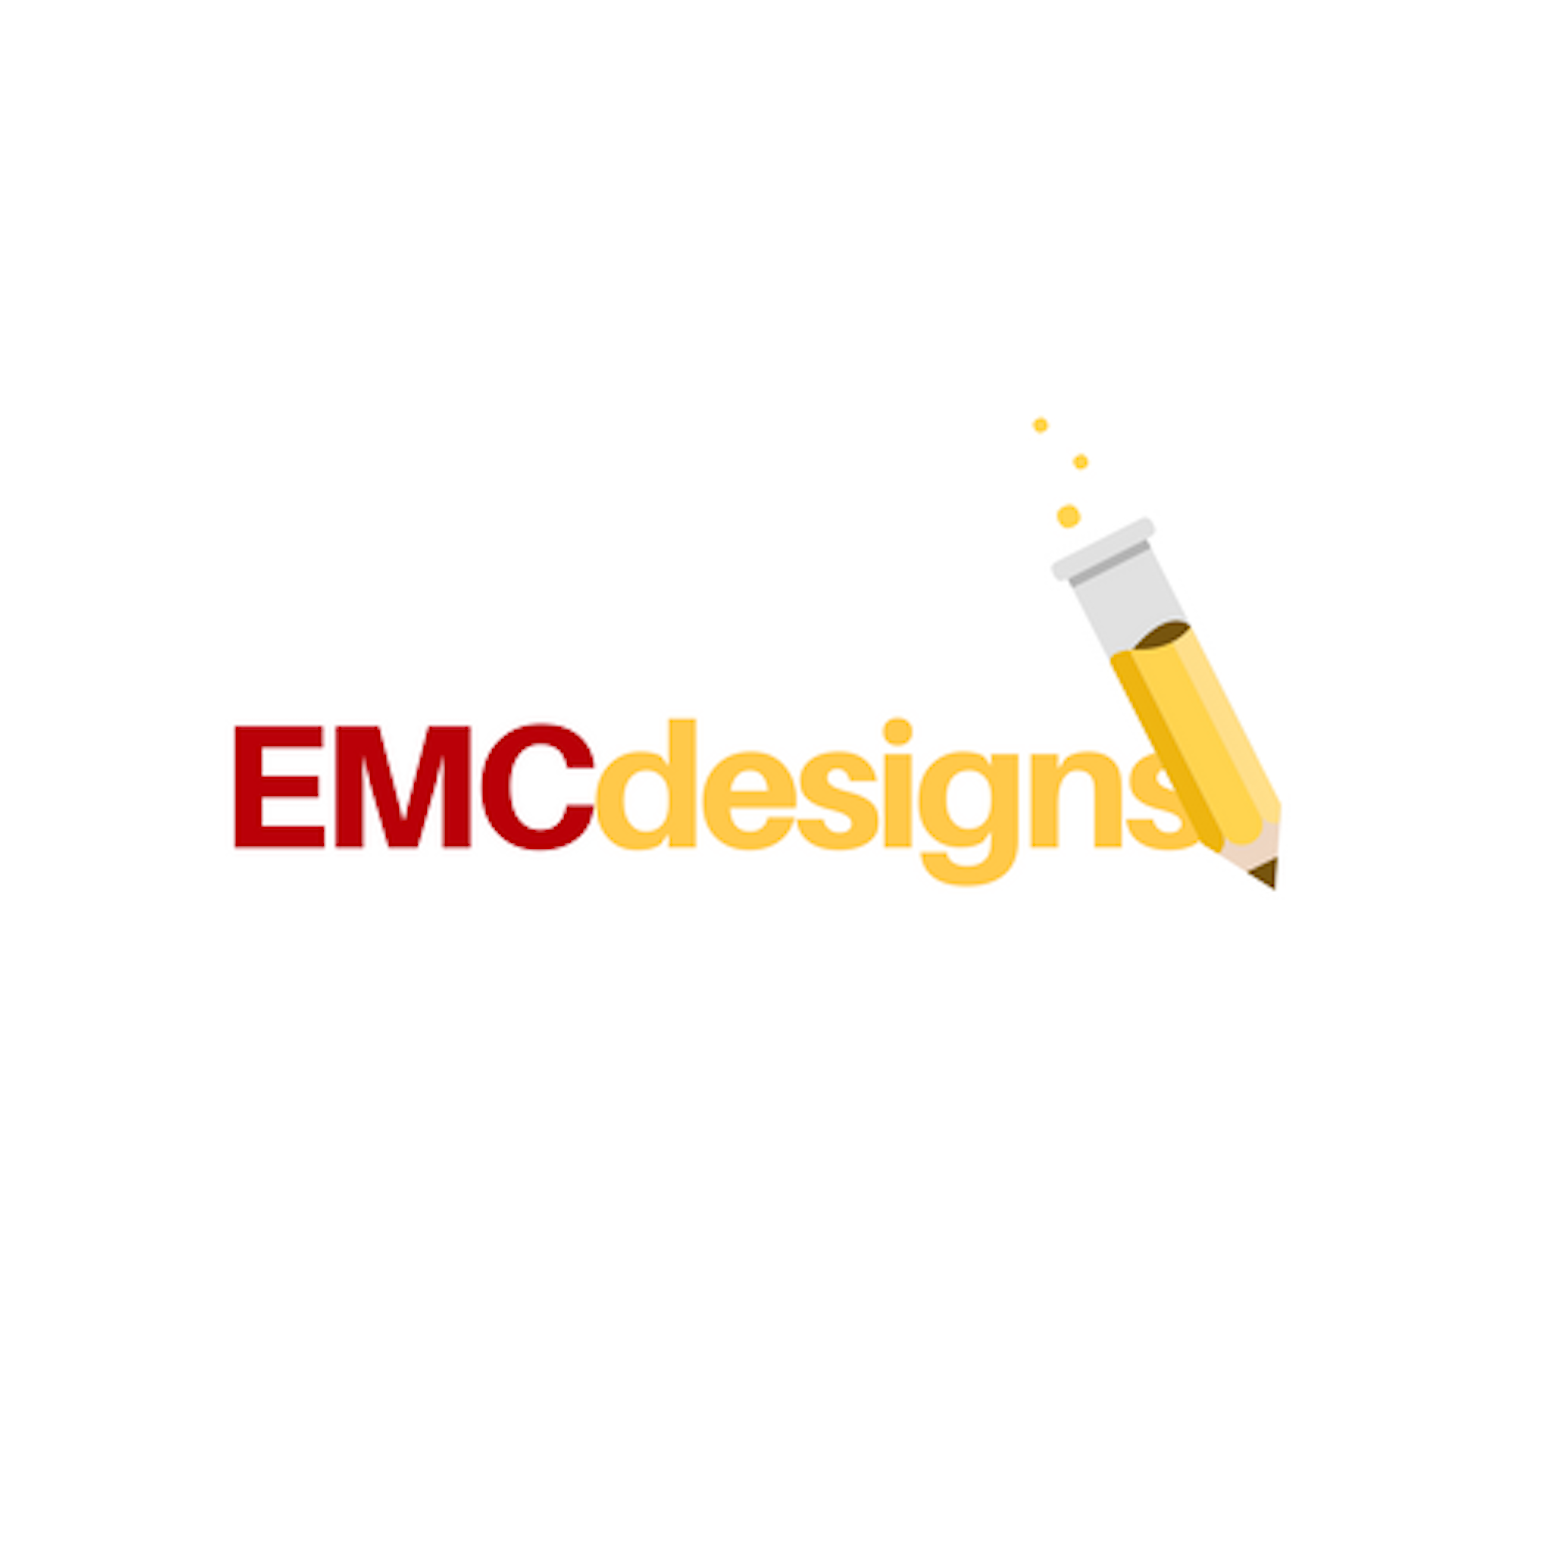 EMCdesigns